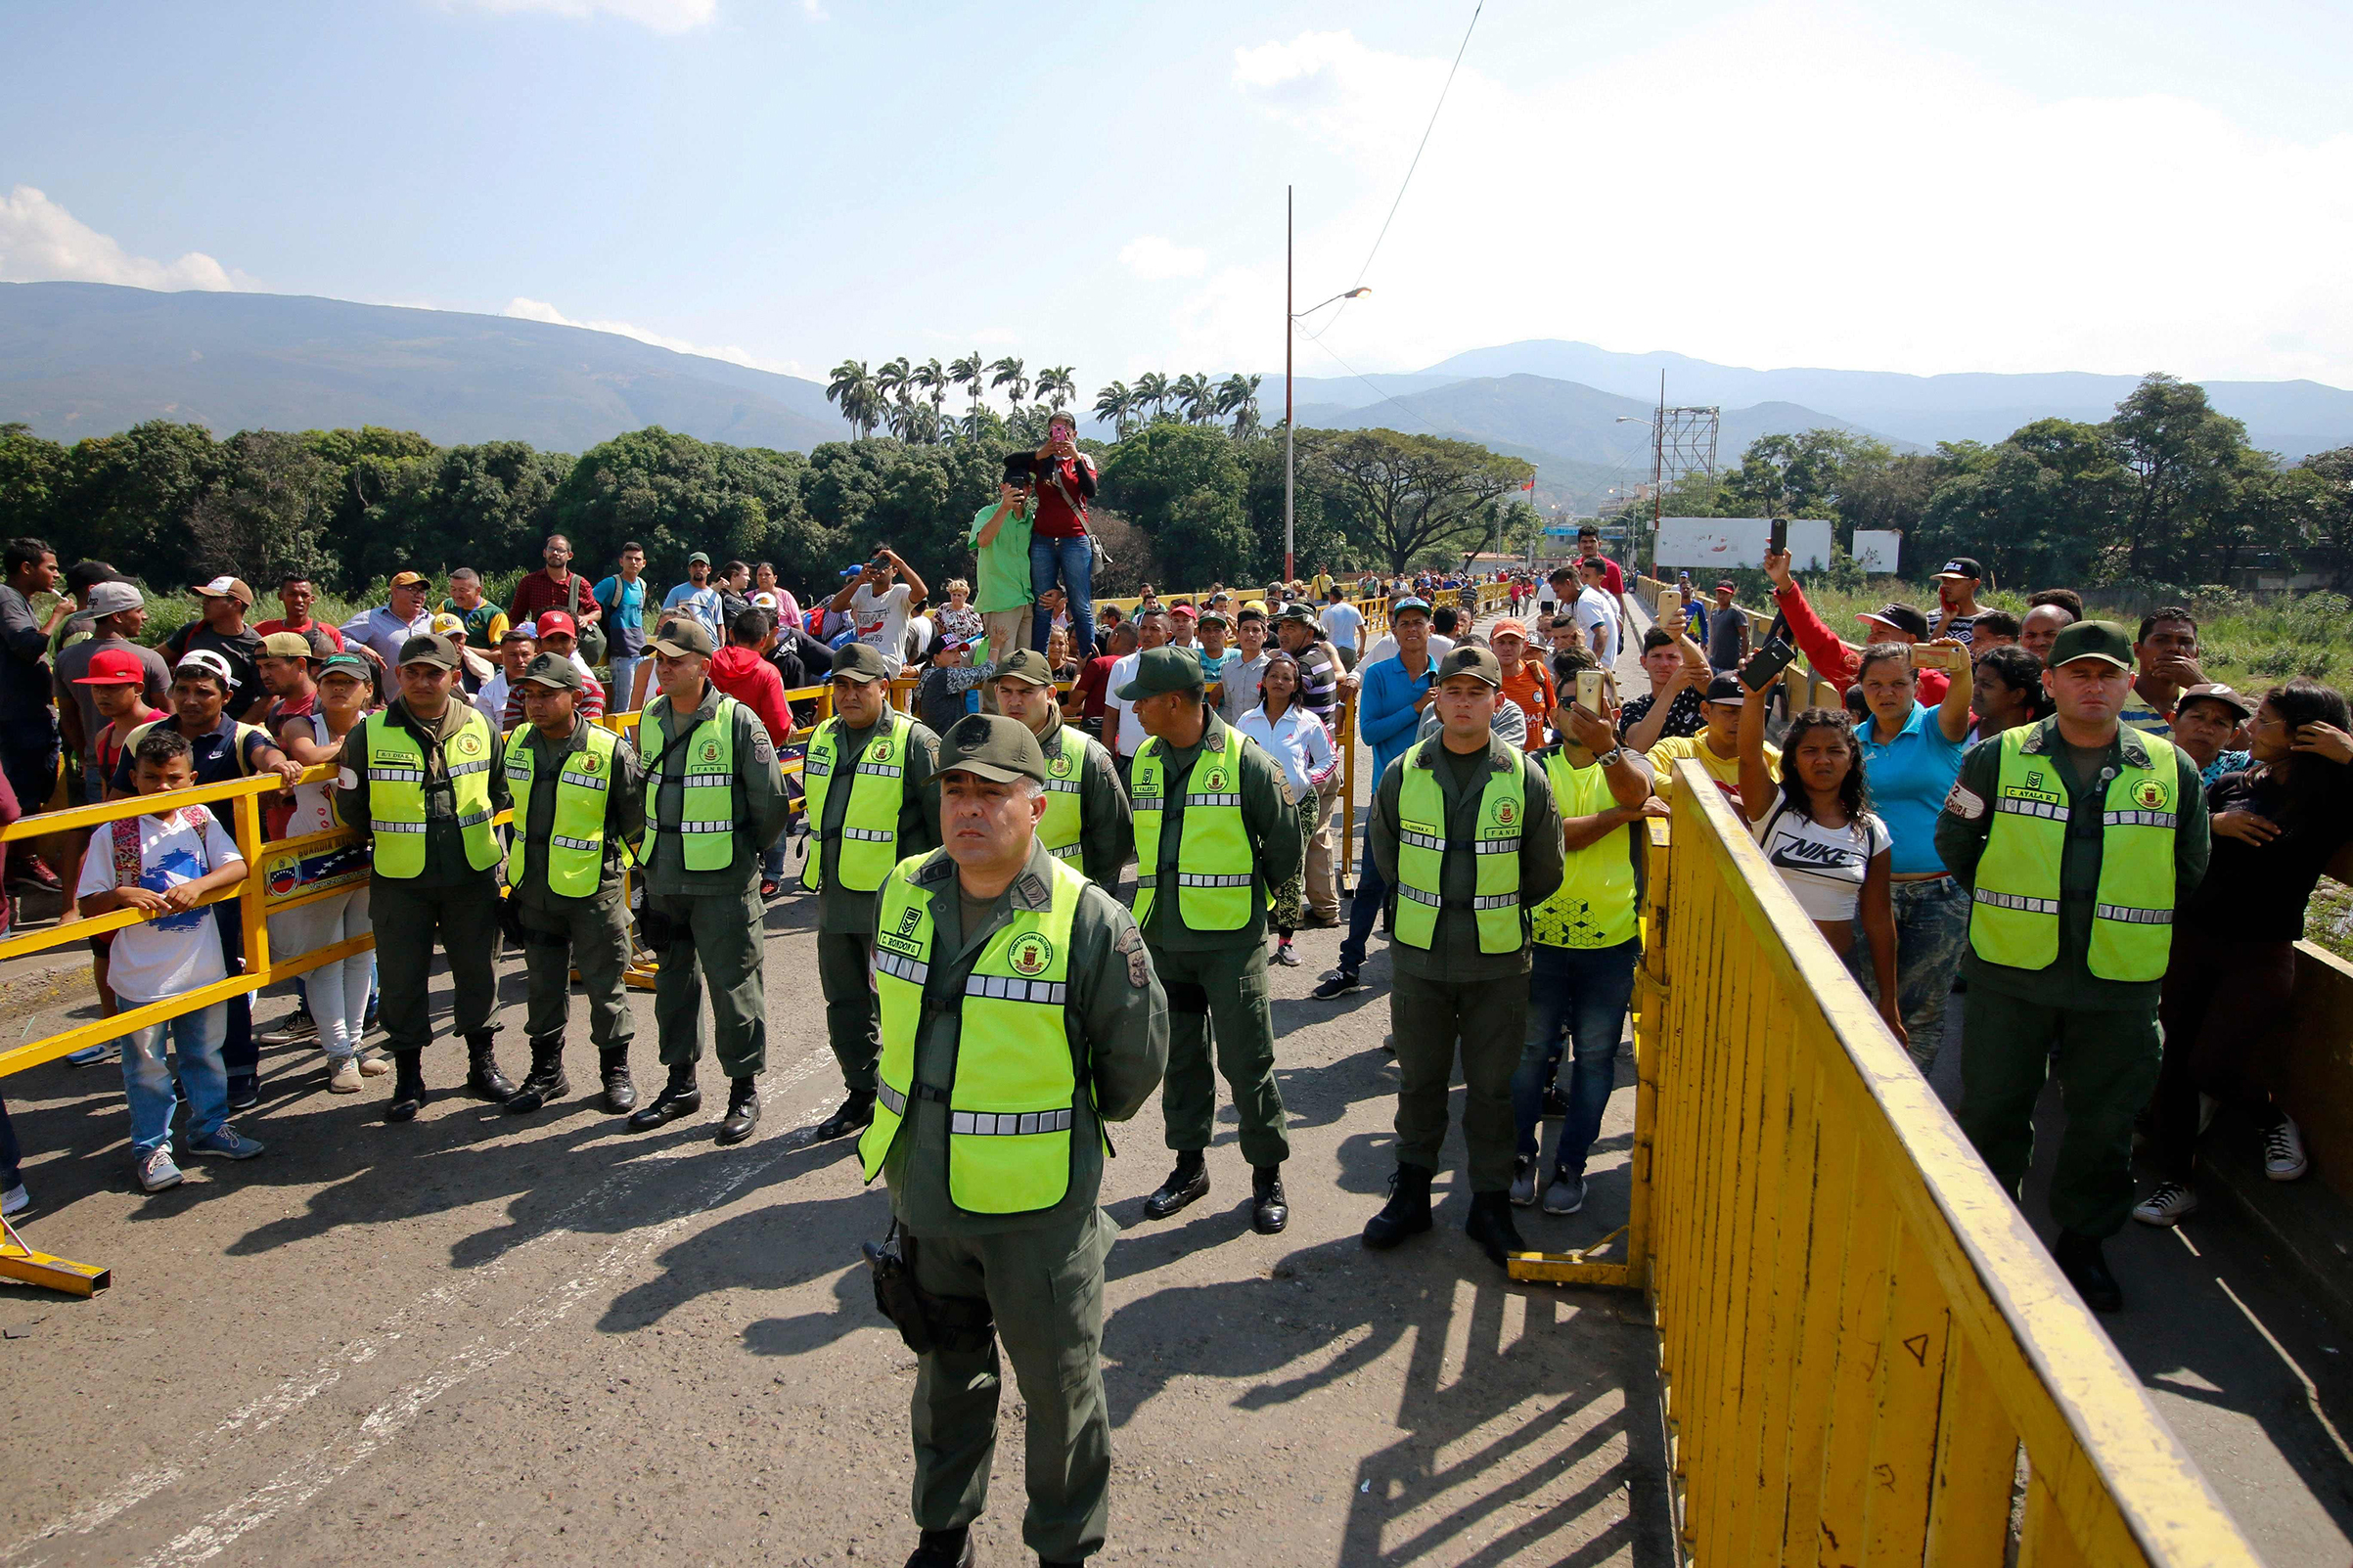 Venezuelan police block the Simon Bolivar International Bridge as Venezuelans coming from the Colombian border city of Cúcuta take part in a protest against Nicolas Maduro on January 23, 2019.